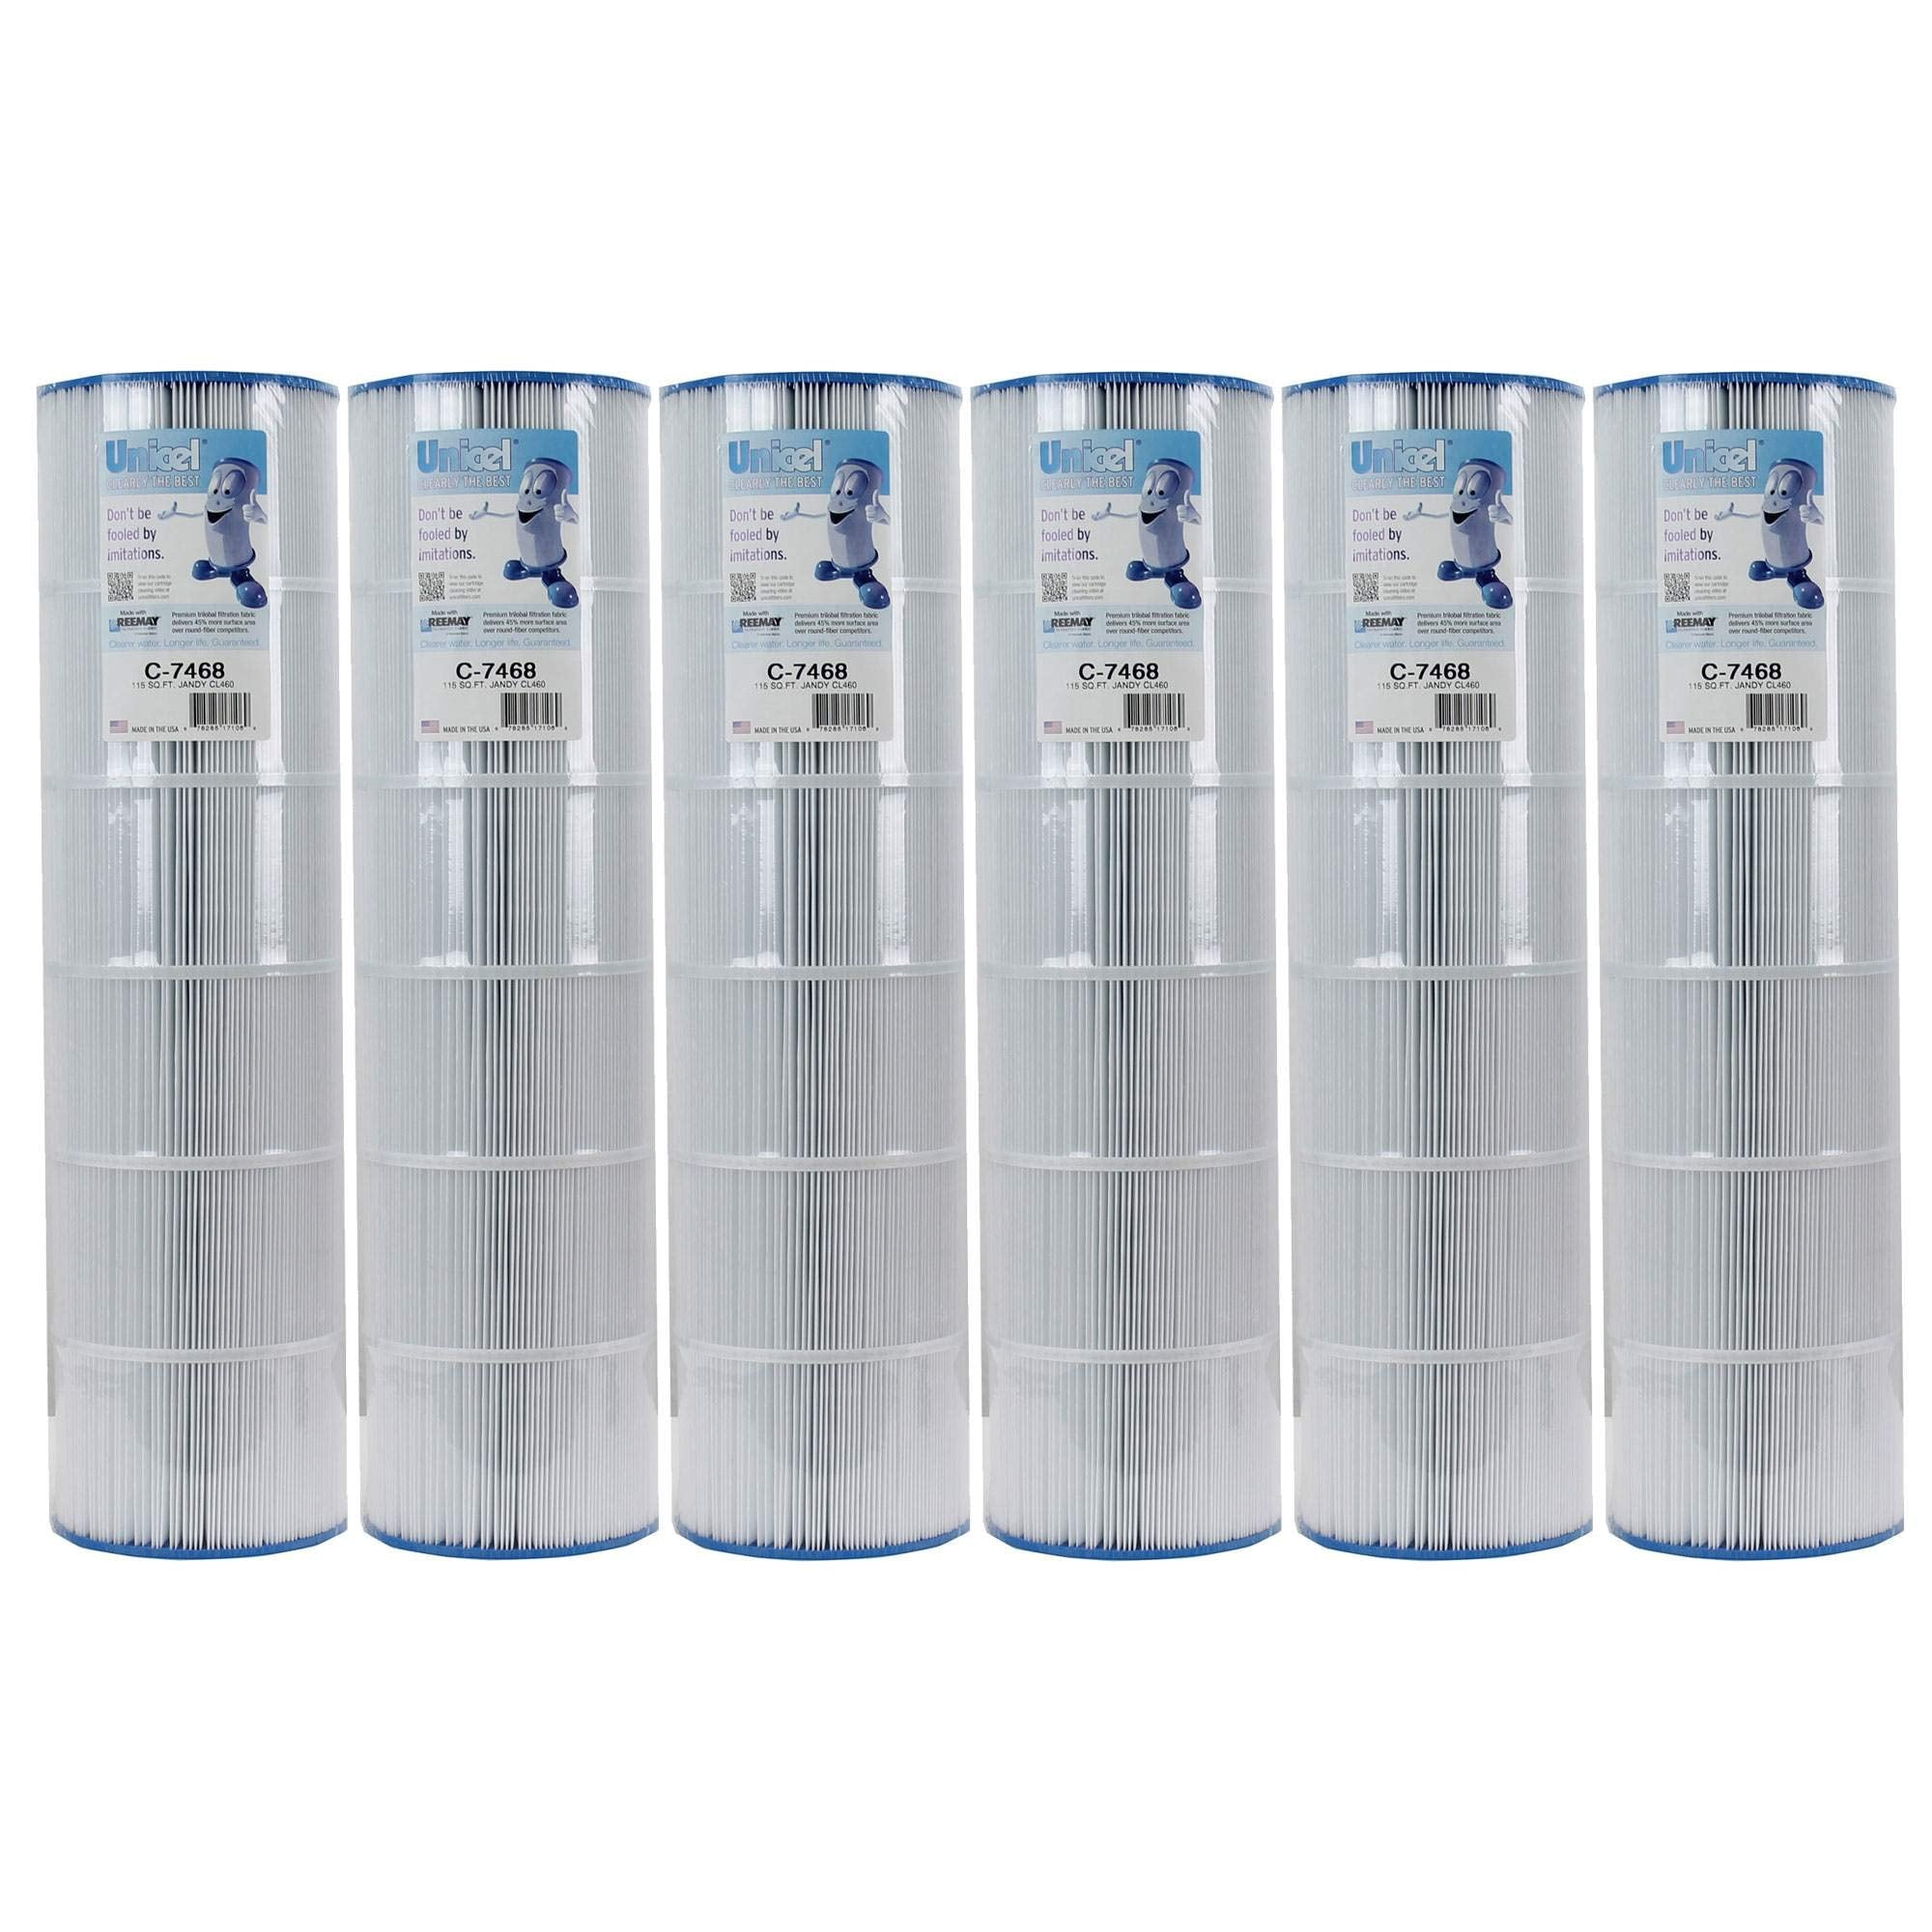 Unicel C-7468 FC-0810 Swimming Pool Filter Replacement Cartridge CL460 (6 Pack)